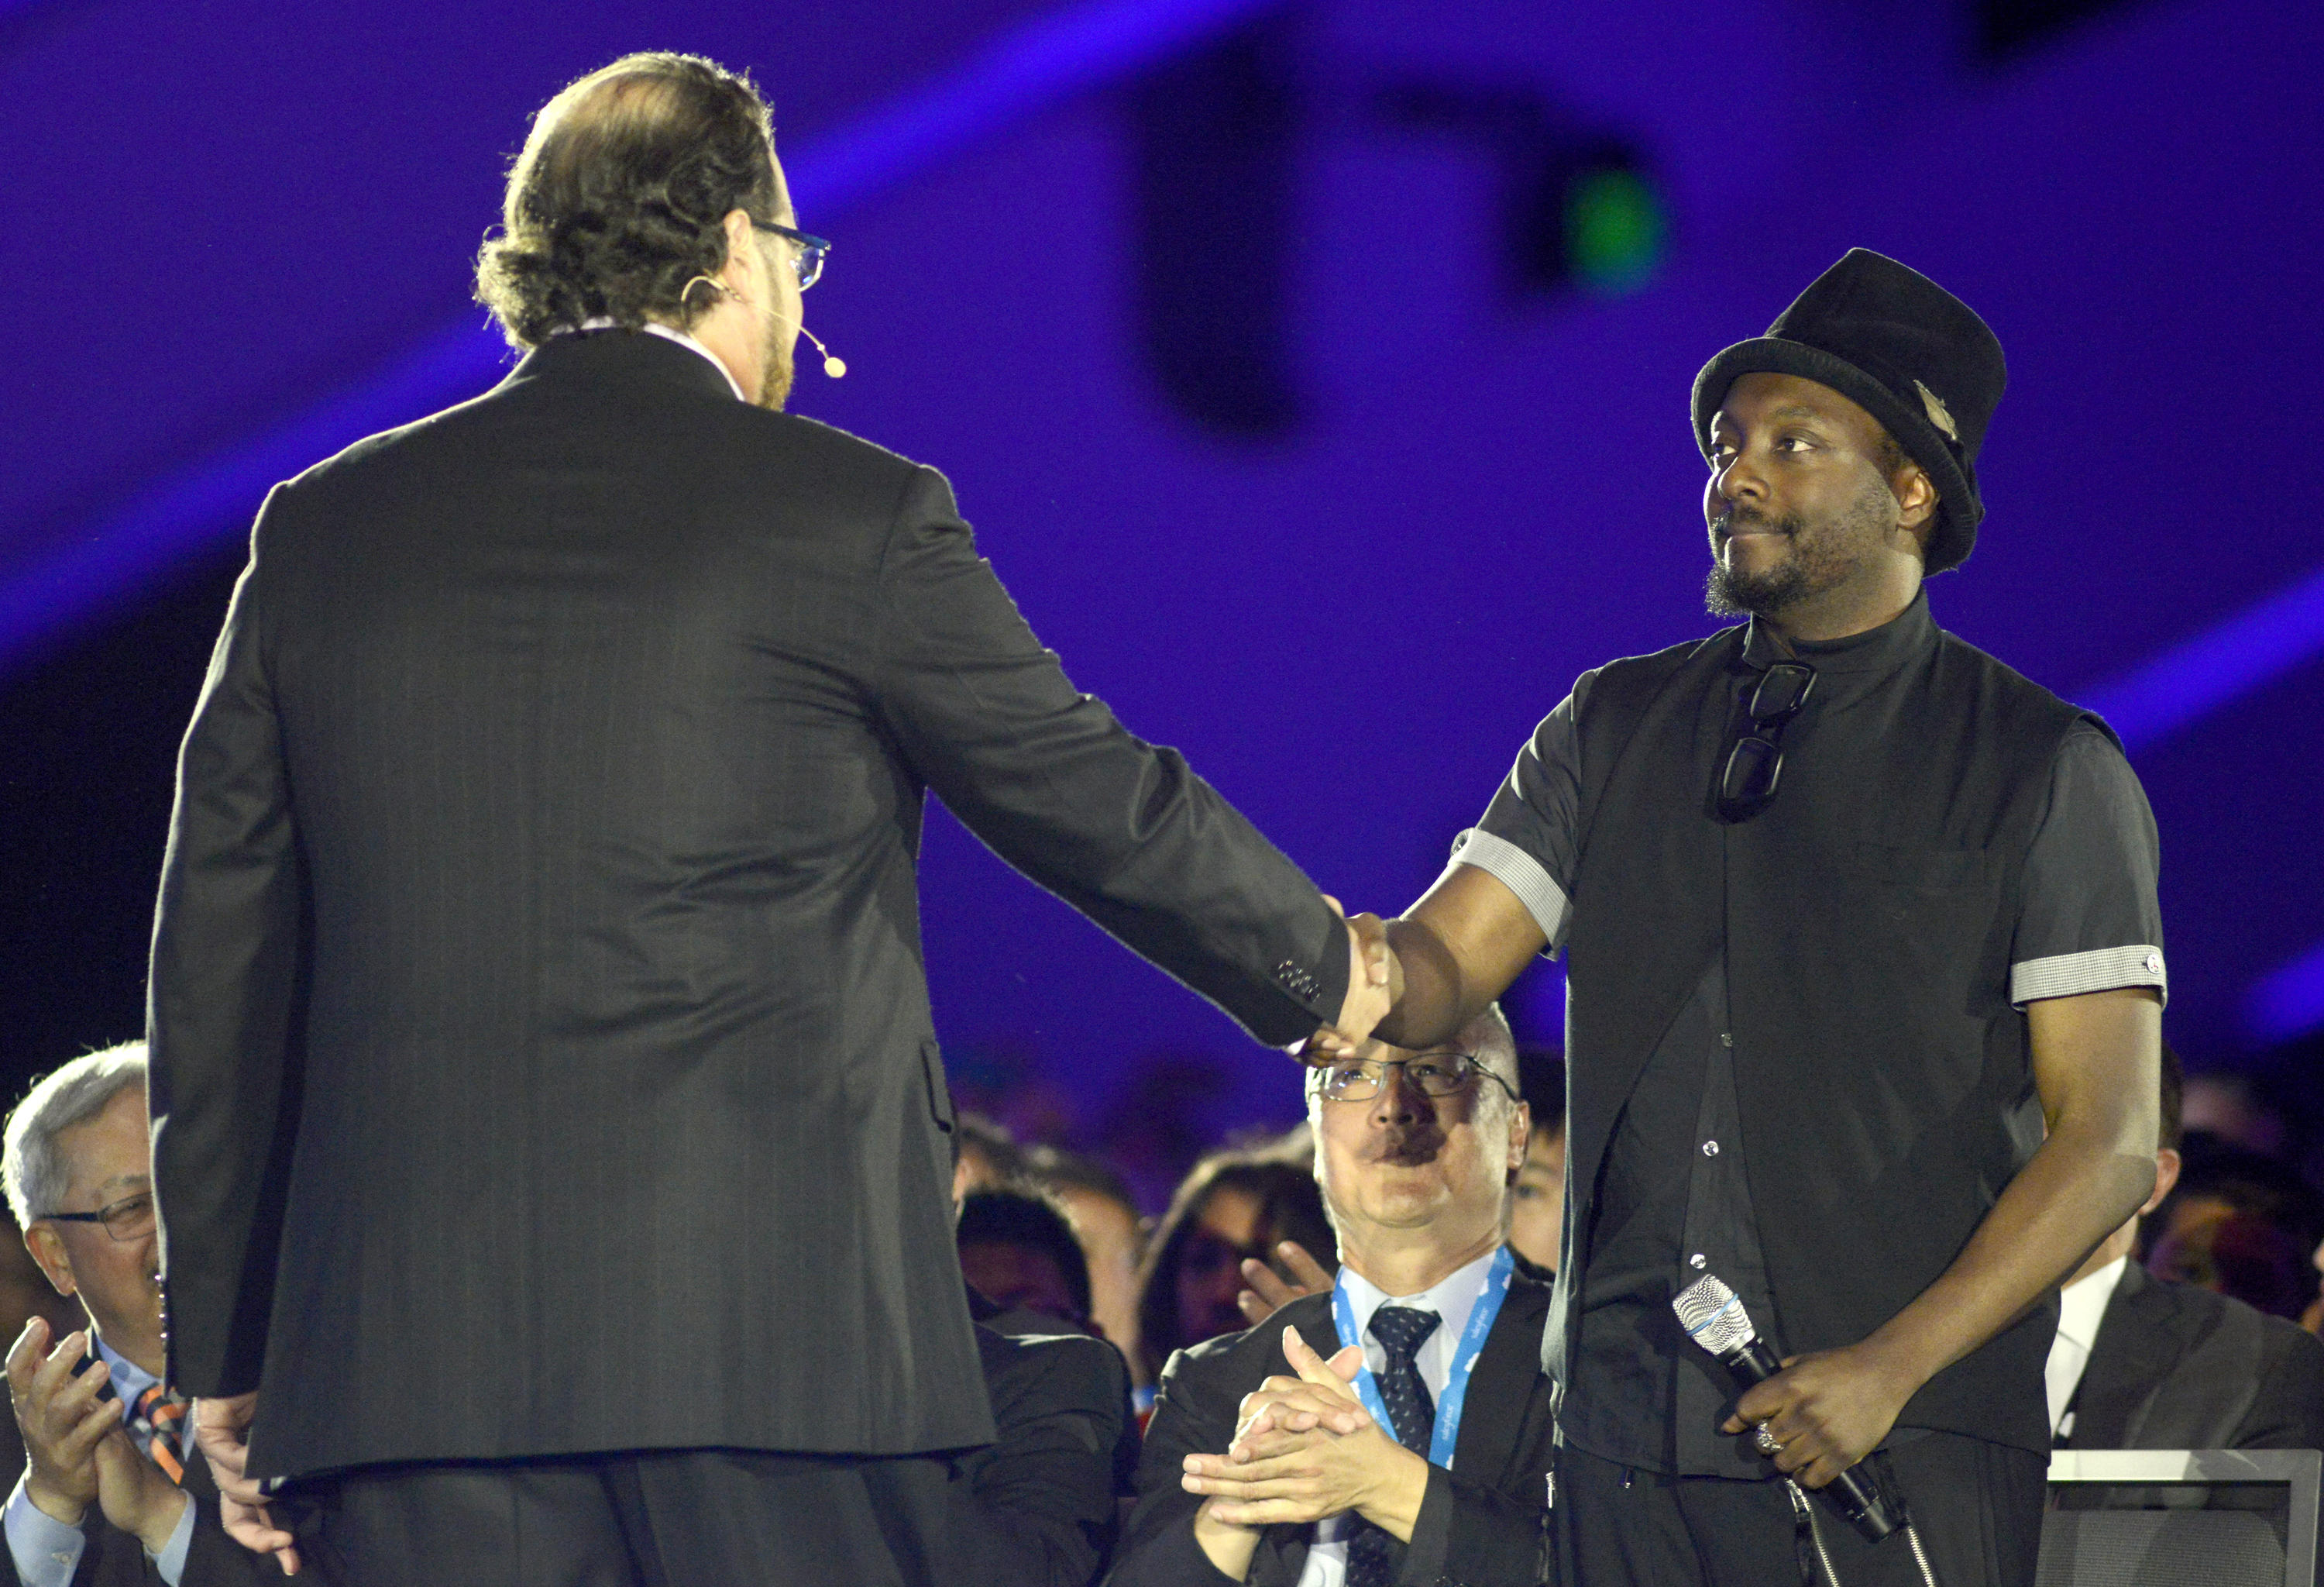 Marc Benioff (left) and will.i.am participate in the keynote speech at Salesforce.com's Dreamforce 2014 Conference.